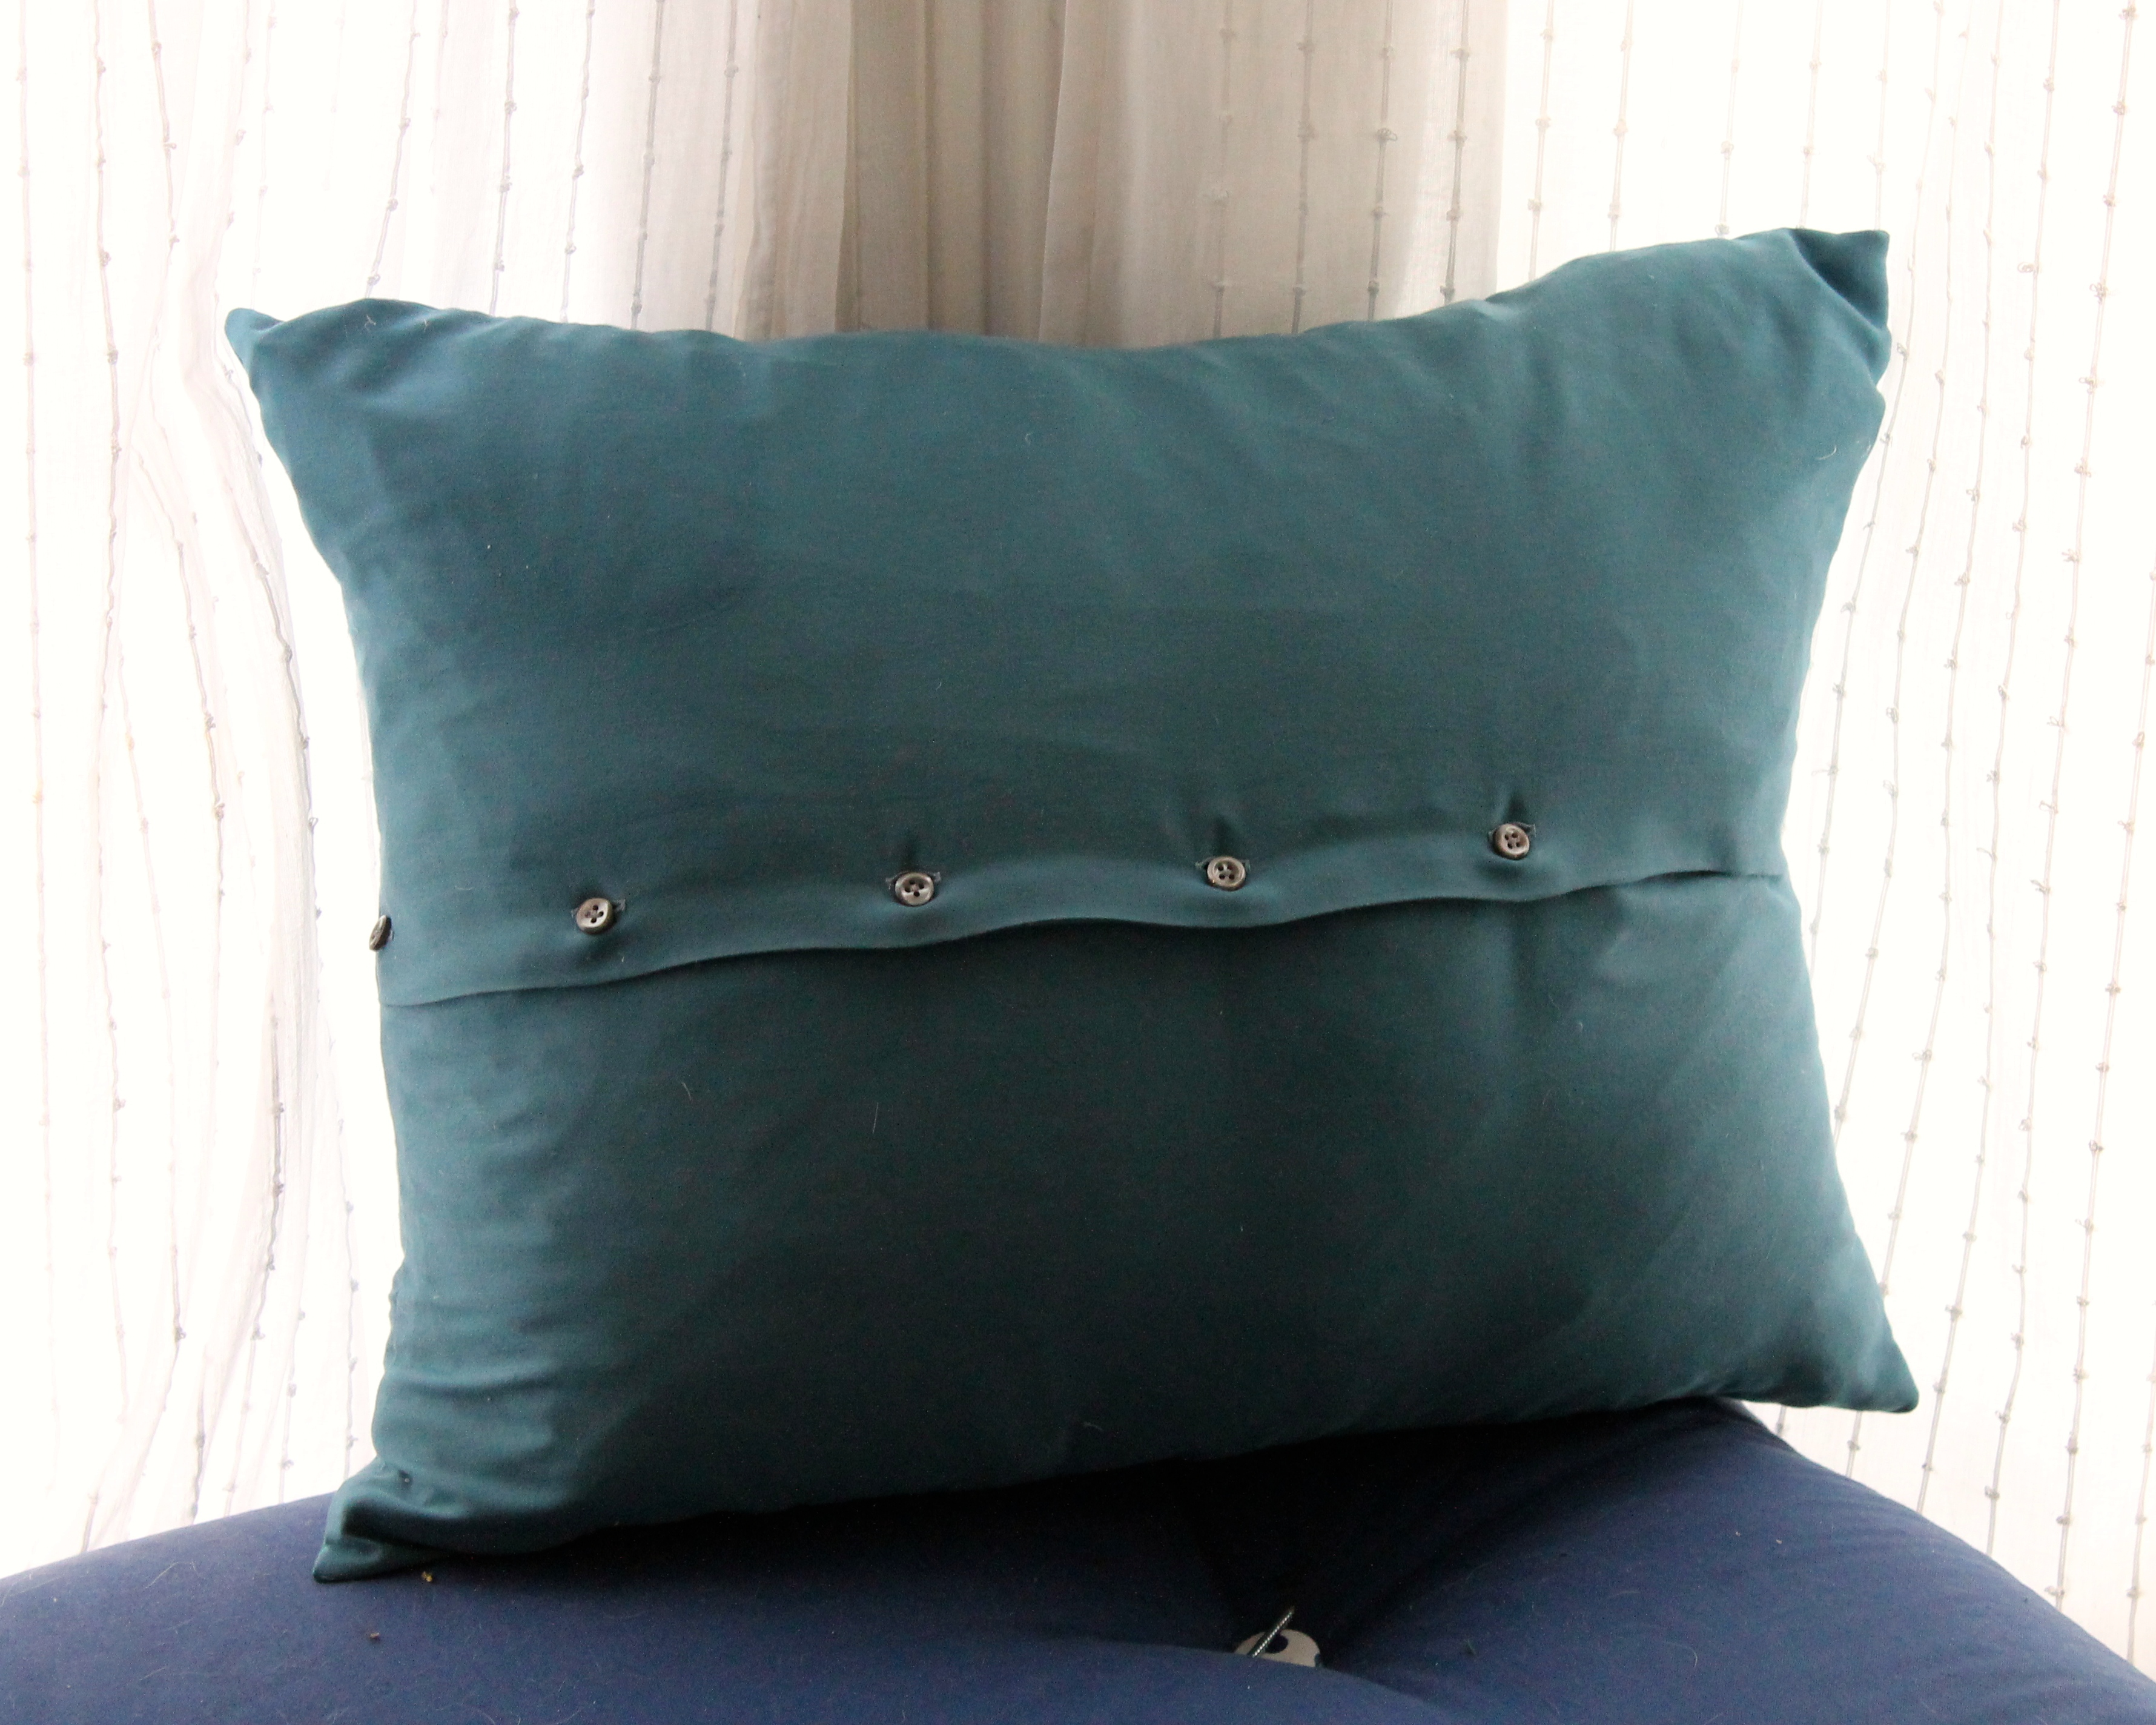 Enjoyable Couch Pillow From A Button Down Shirt Measured And Slow Caraccident5 Cool Chair Designs And Ideas Caraccident5Info